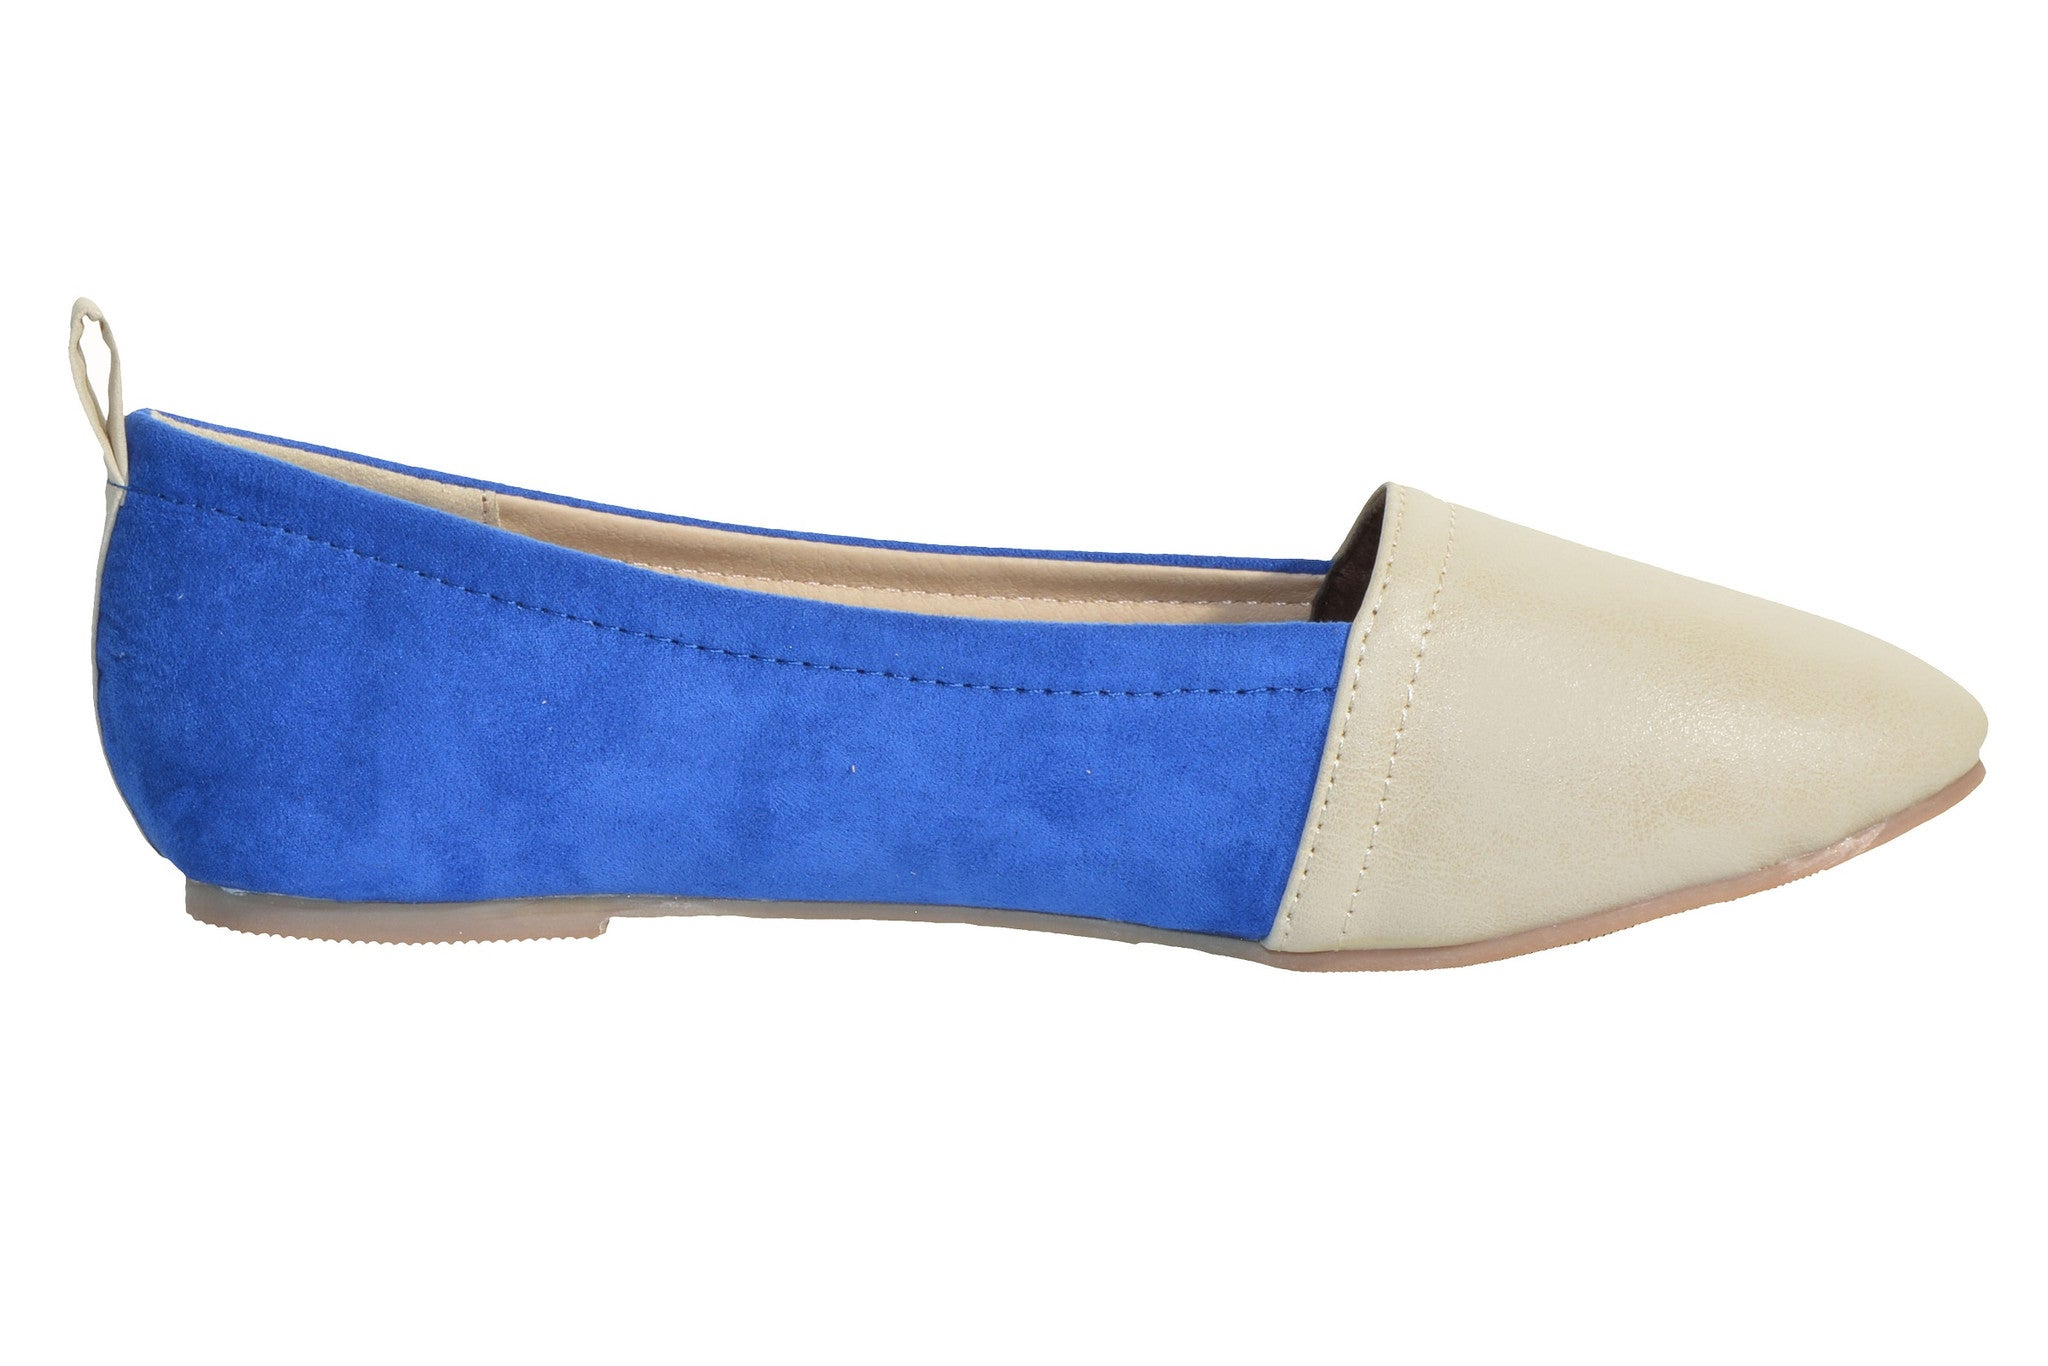 Colorblock Suede & Leather Slip-On Flat,Shoes,Niselook - Discount Divas